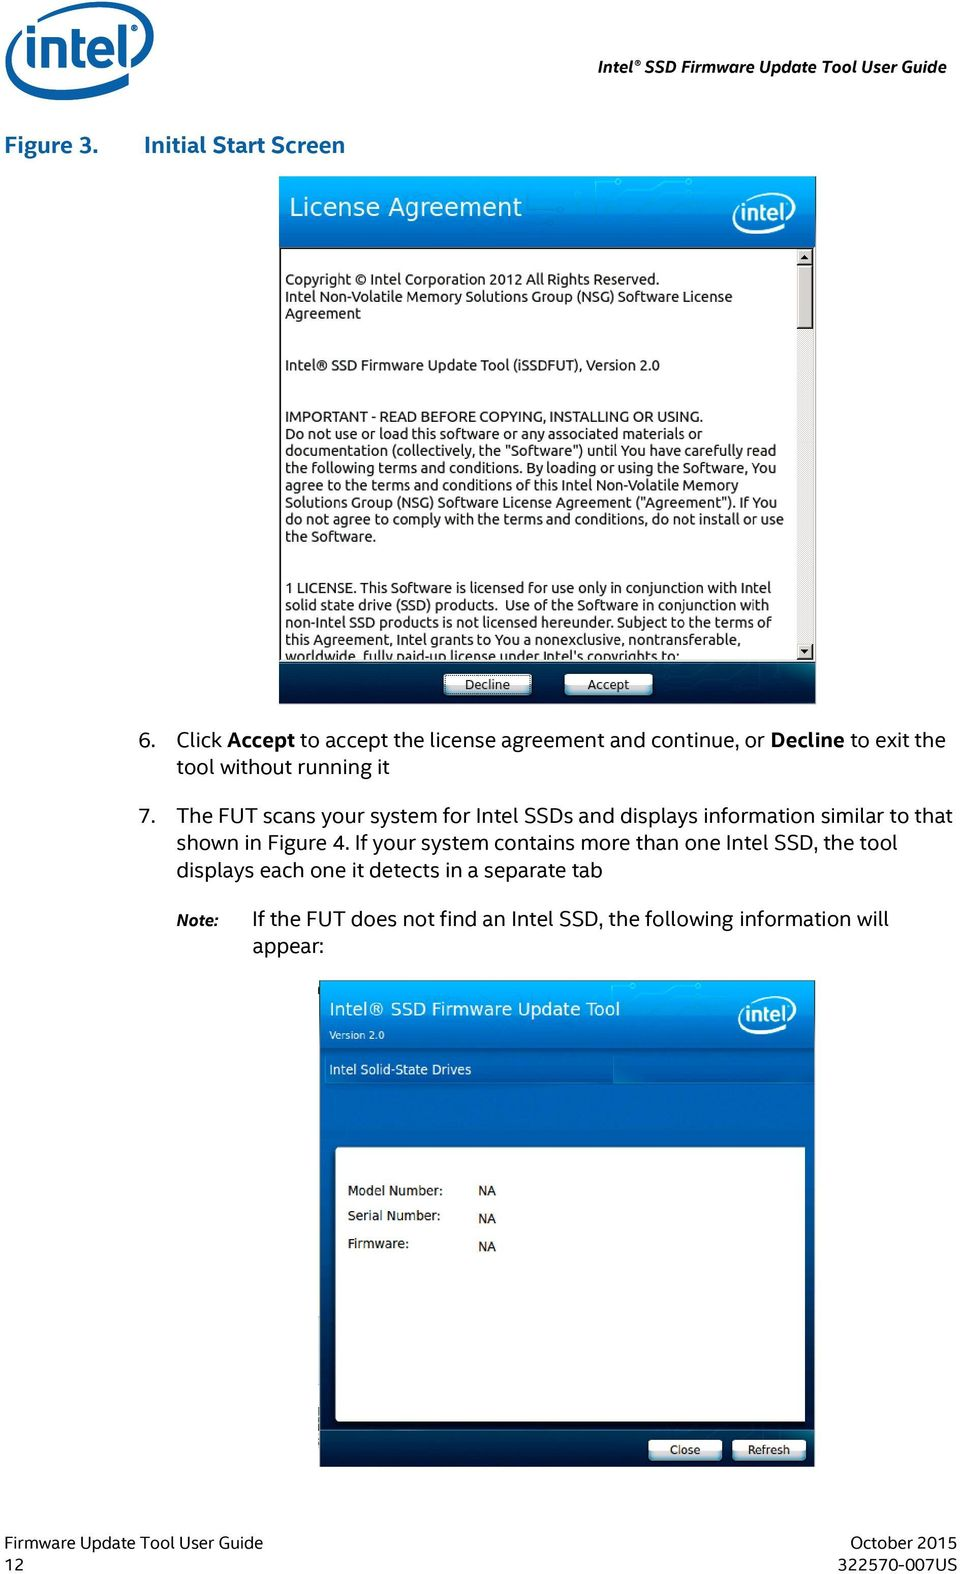 The FUT scans your system for Intel SSDs and displays information similar to that shown in Figure 4.